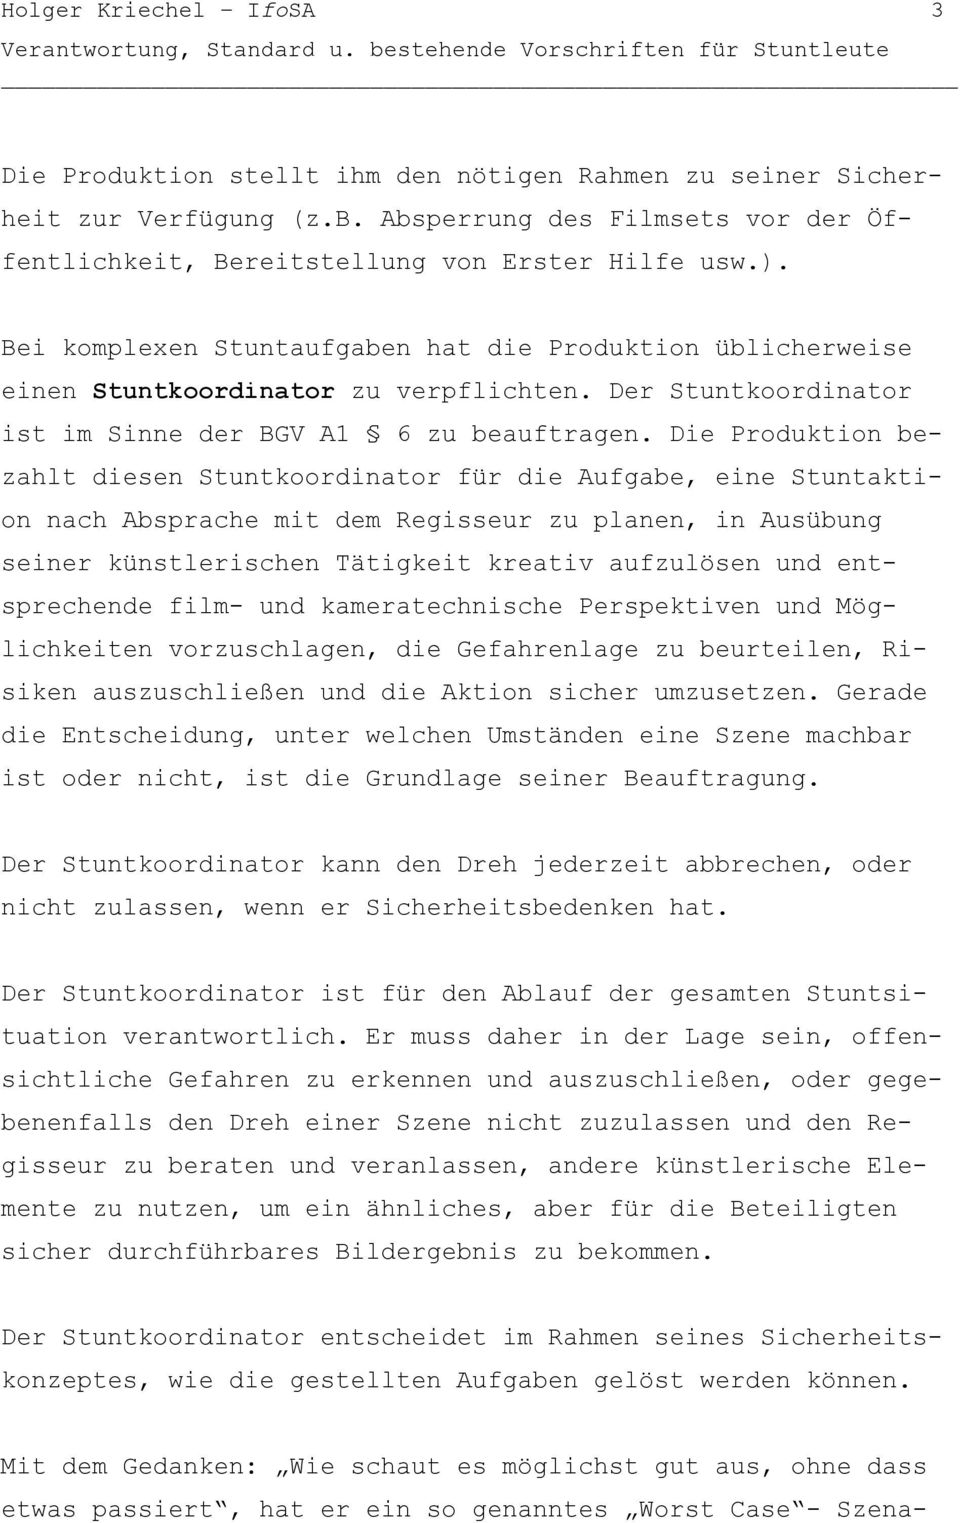 verantwortung im ernstfall film download